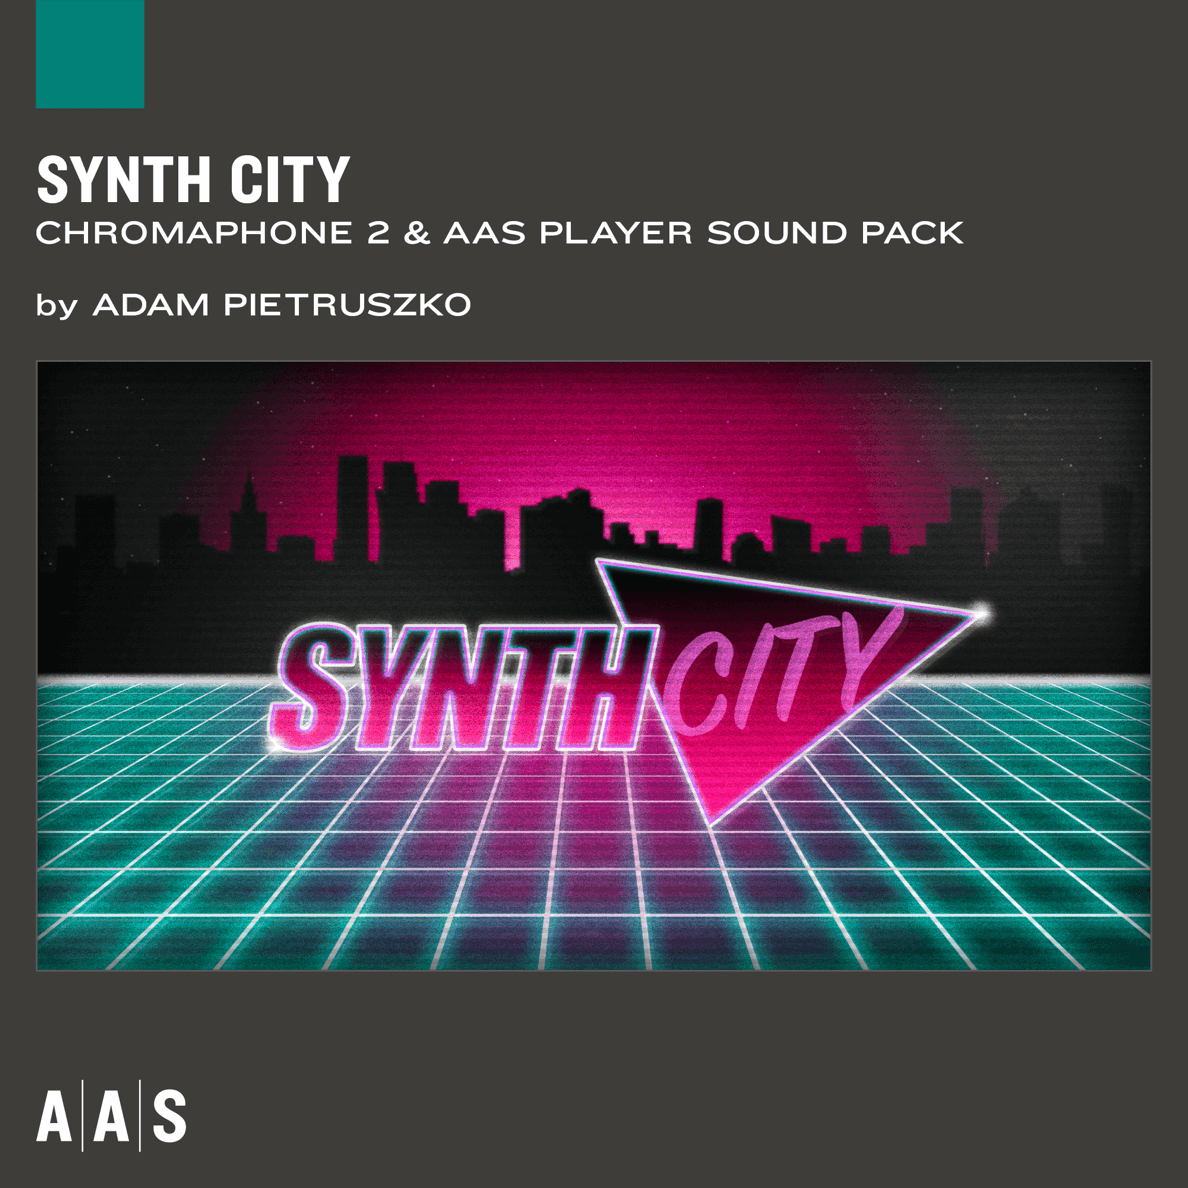 AAS Sound Packs: Synth City AAS Sound Packs PluginFox